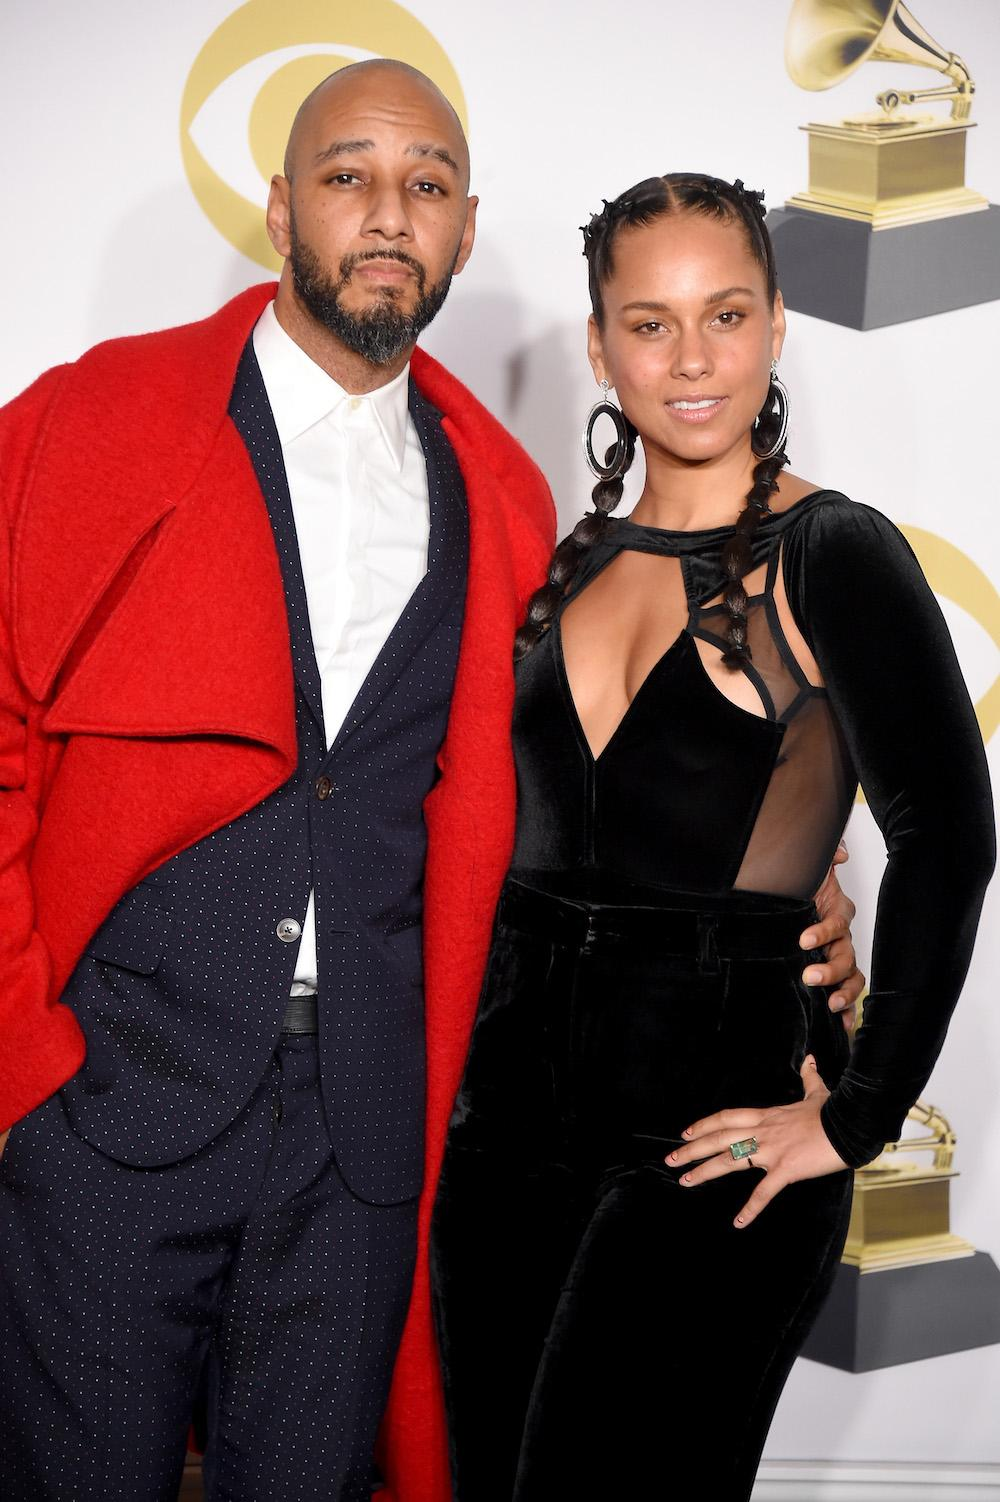 Recording artists Swizz Beatz (L) and Alicia Keys pose in the press room during the 60th Annual GRAMMY Awards at Madison Square Garden on January 28, 2018 in New York City. (Photo by Michael Loccisano/Getty Images for NARAS)